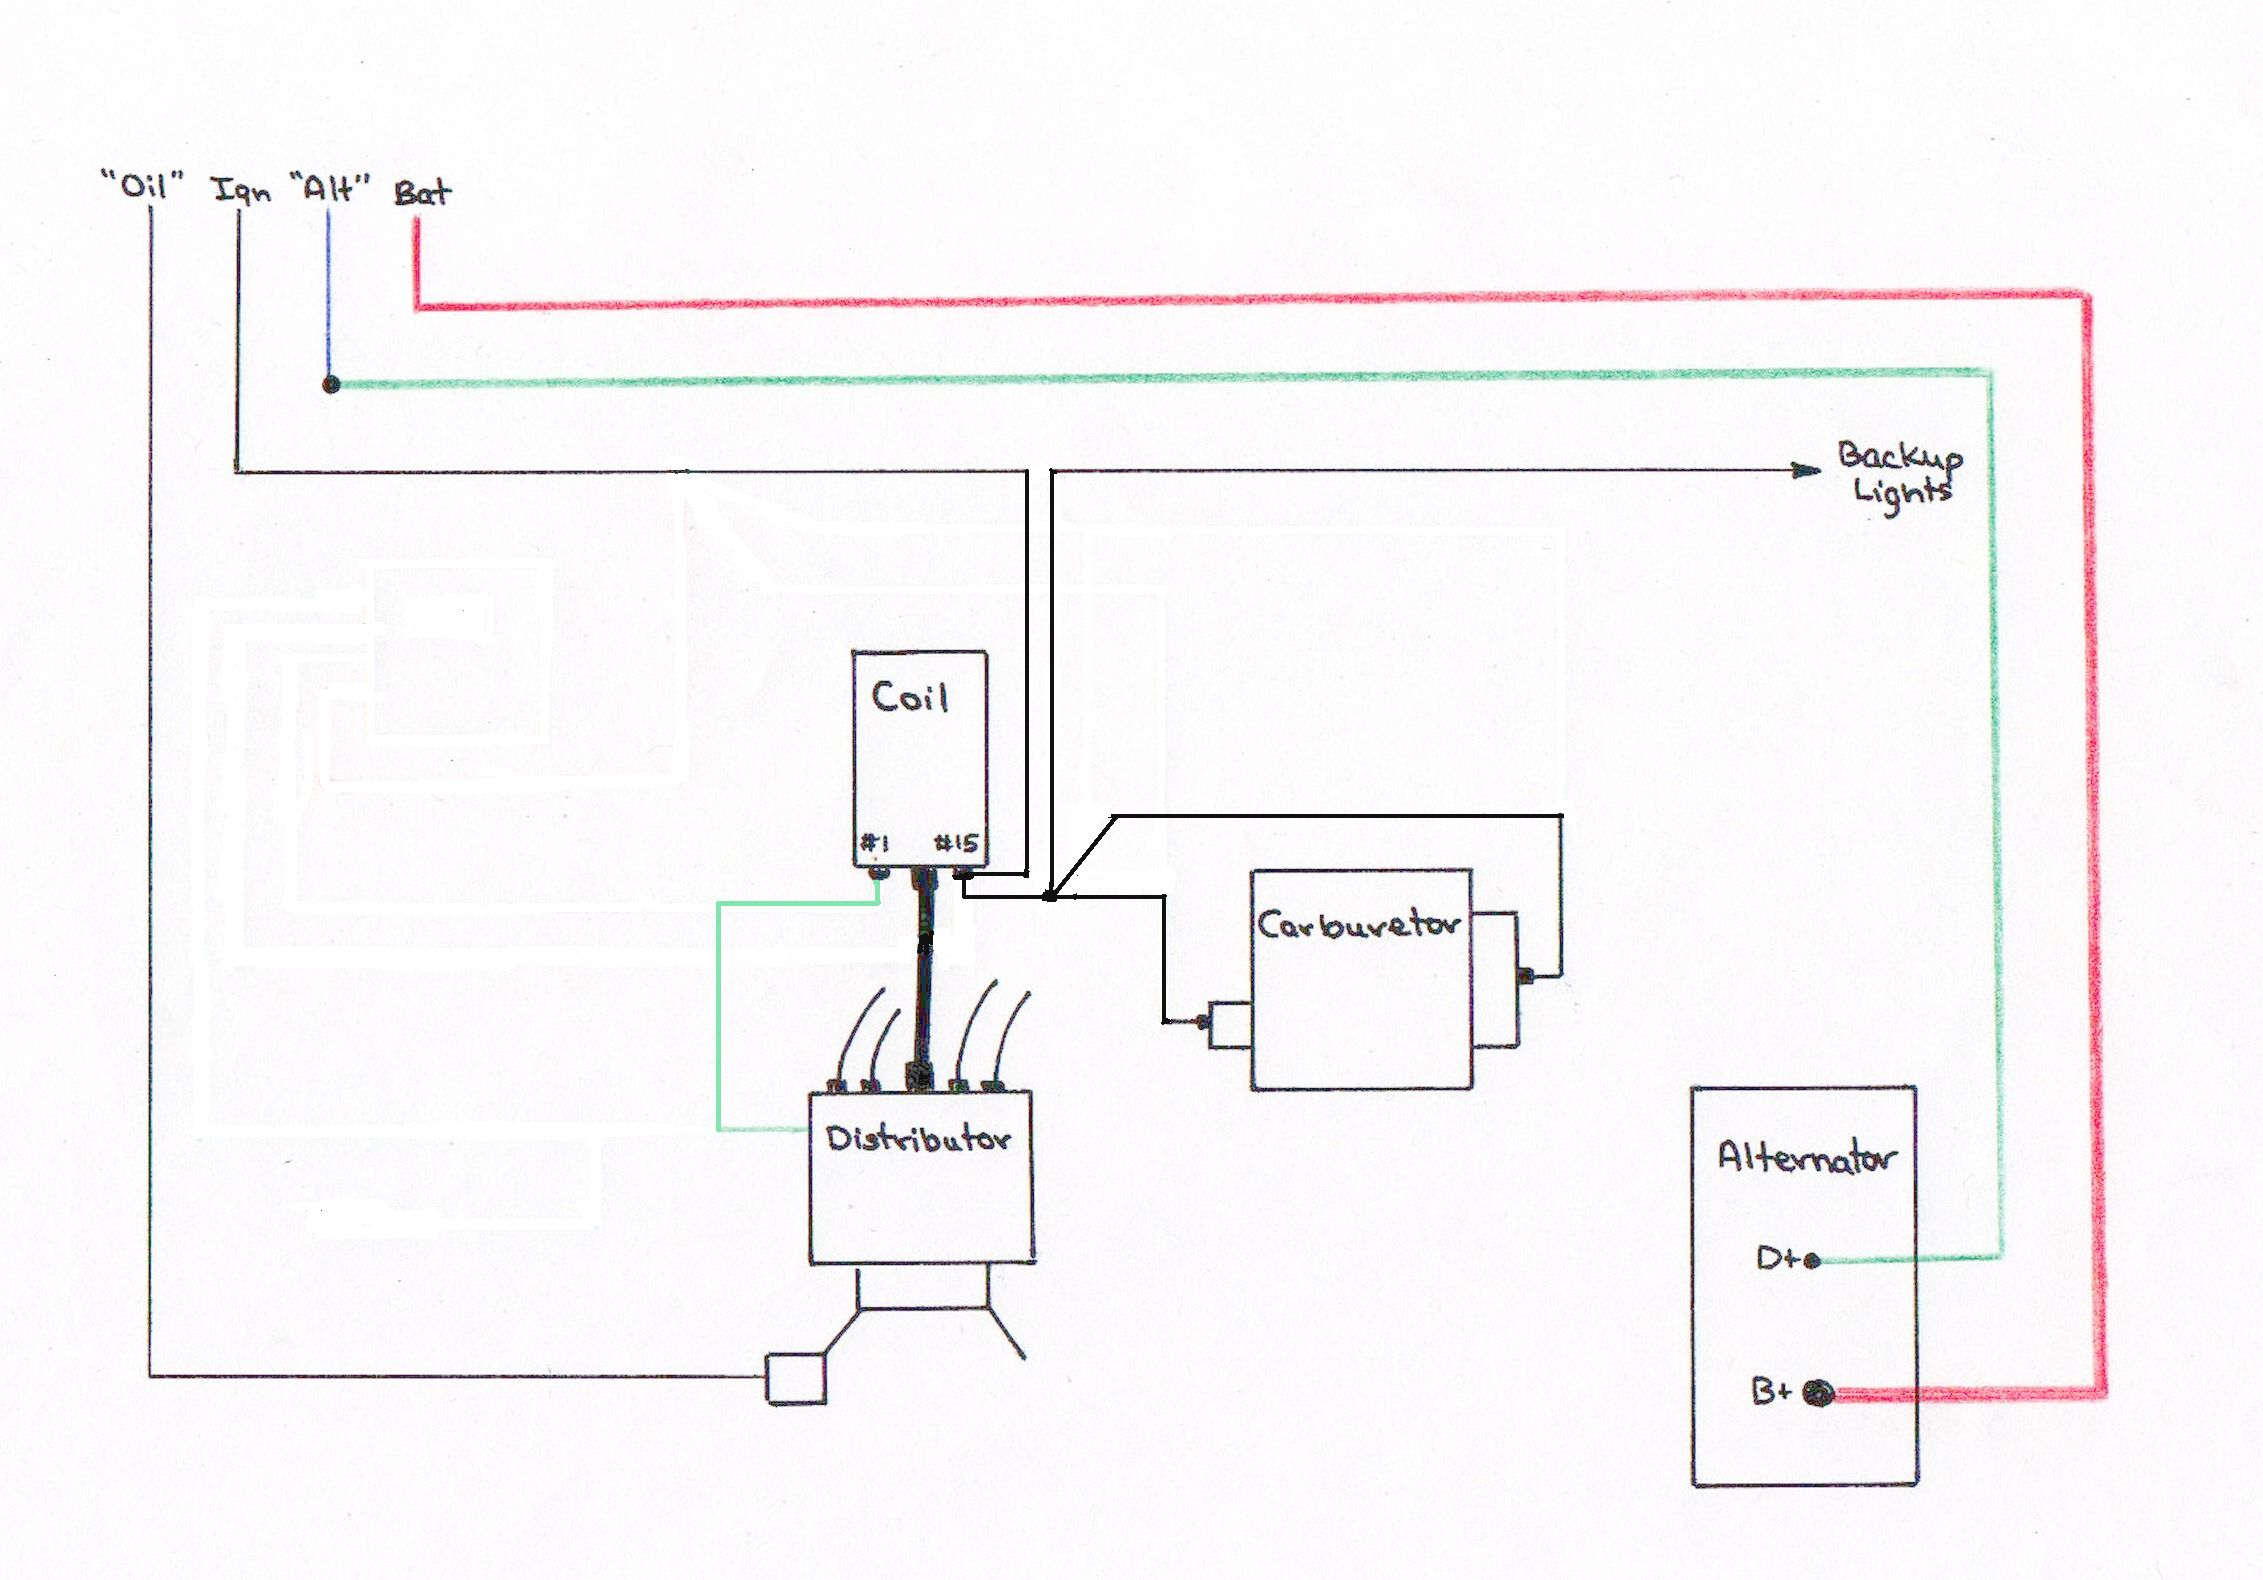 1985 Ford Alternator External Regulator Wiring Diagram - Data Wiring - Ford Alternator Wiring Diagram External Regulator